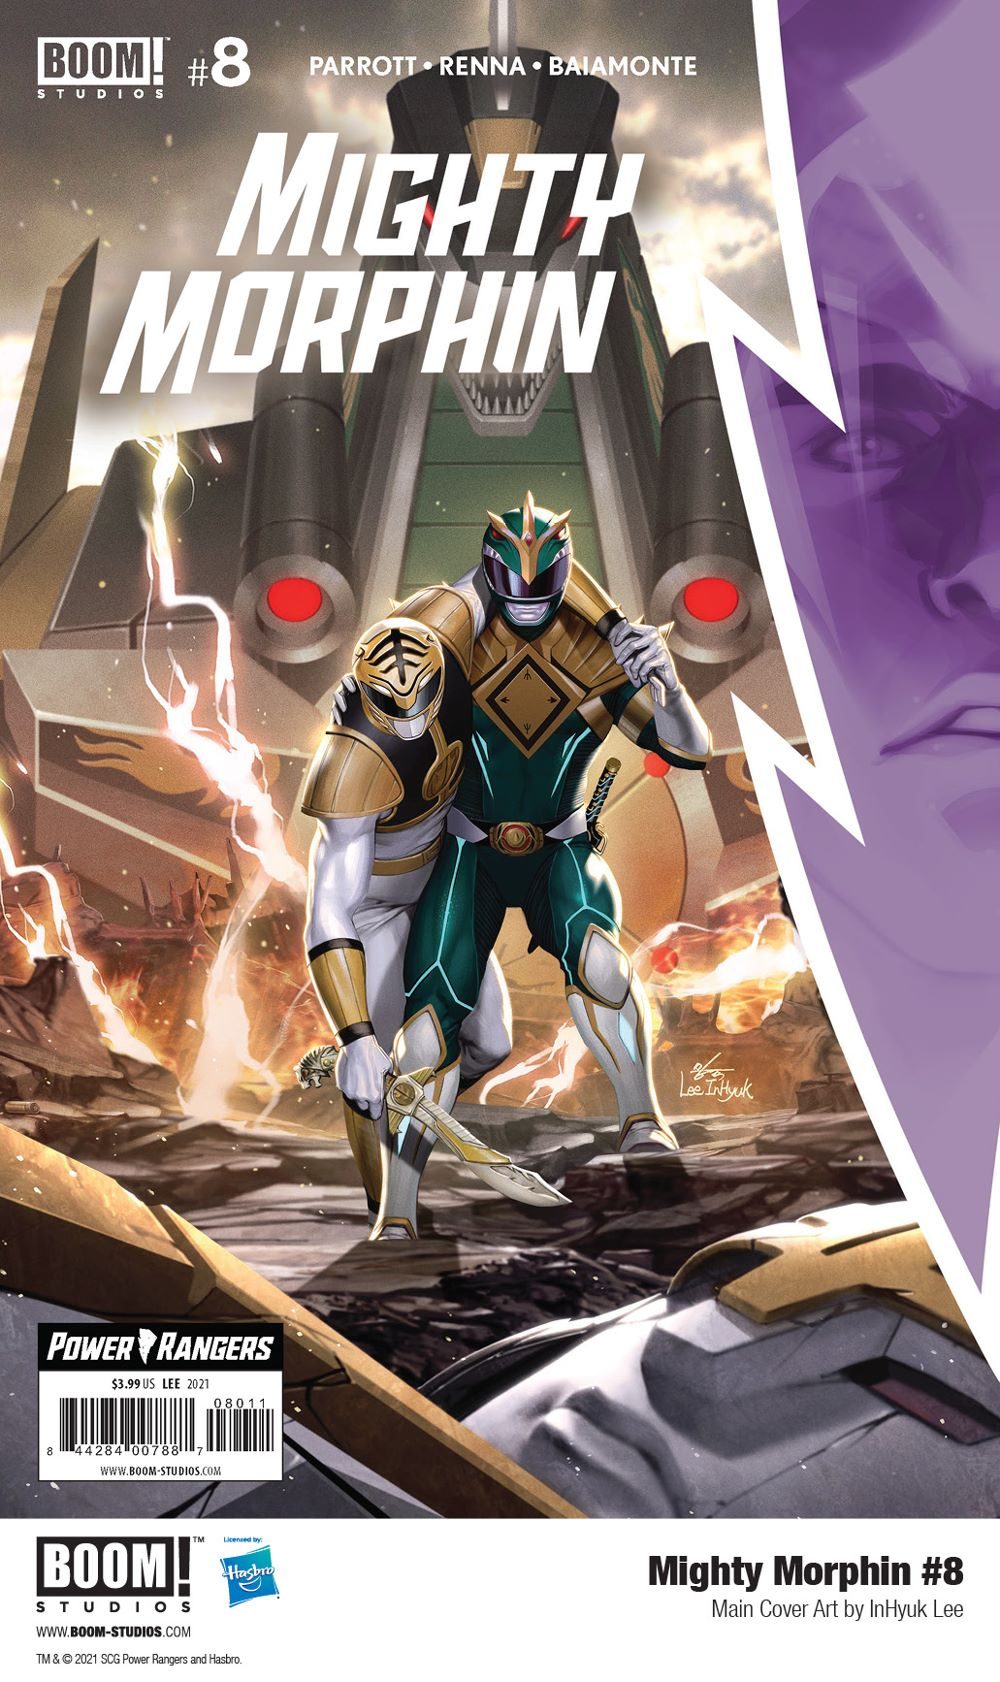 MightyMorphin_008_Cover_Main_PROMO-2 First Look at MIGHTY MORPHIN #8 from BOOM! Studios